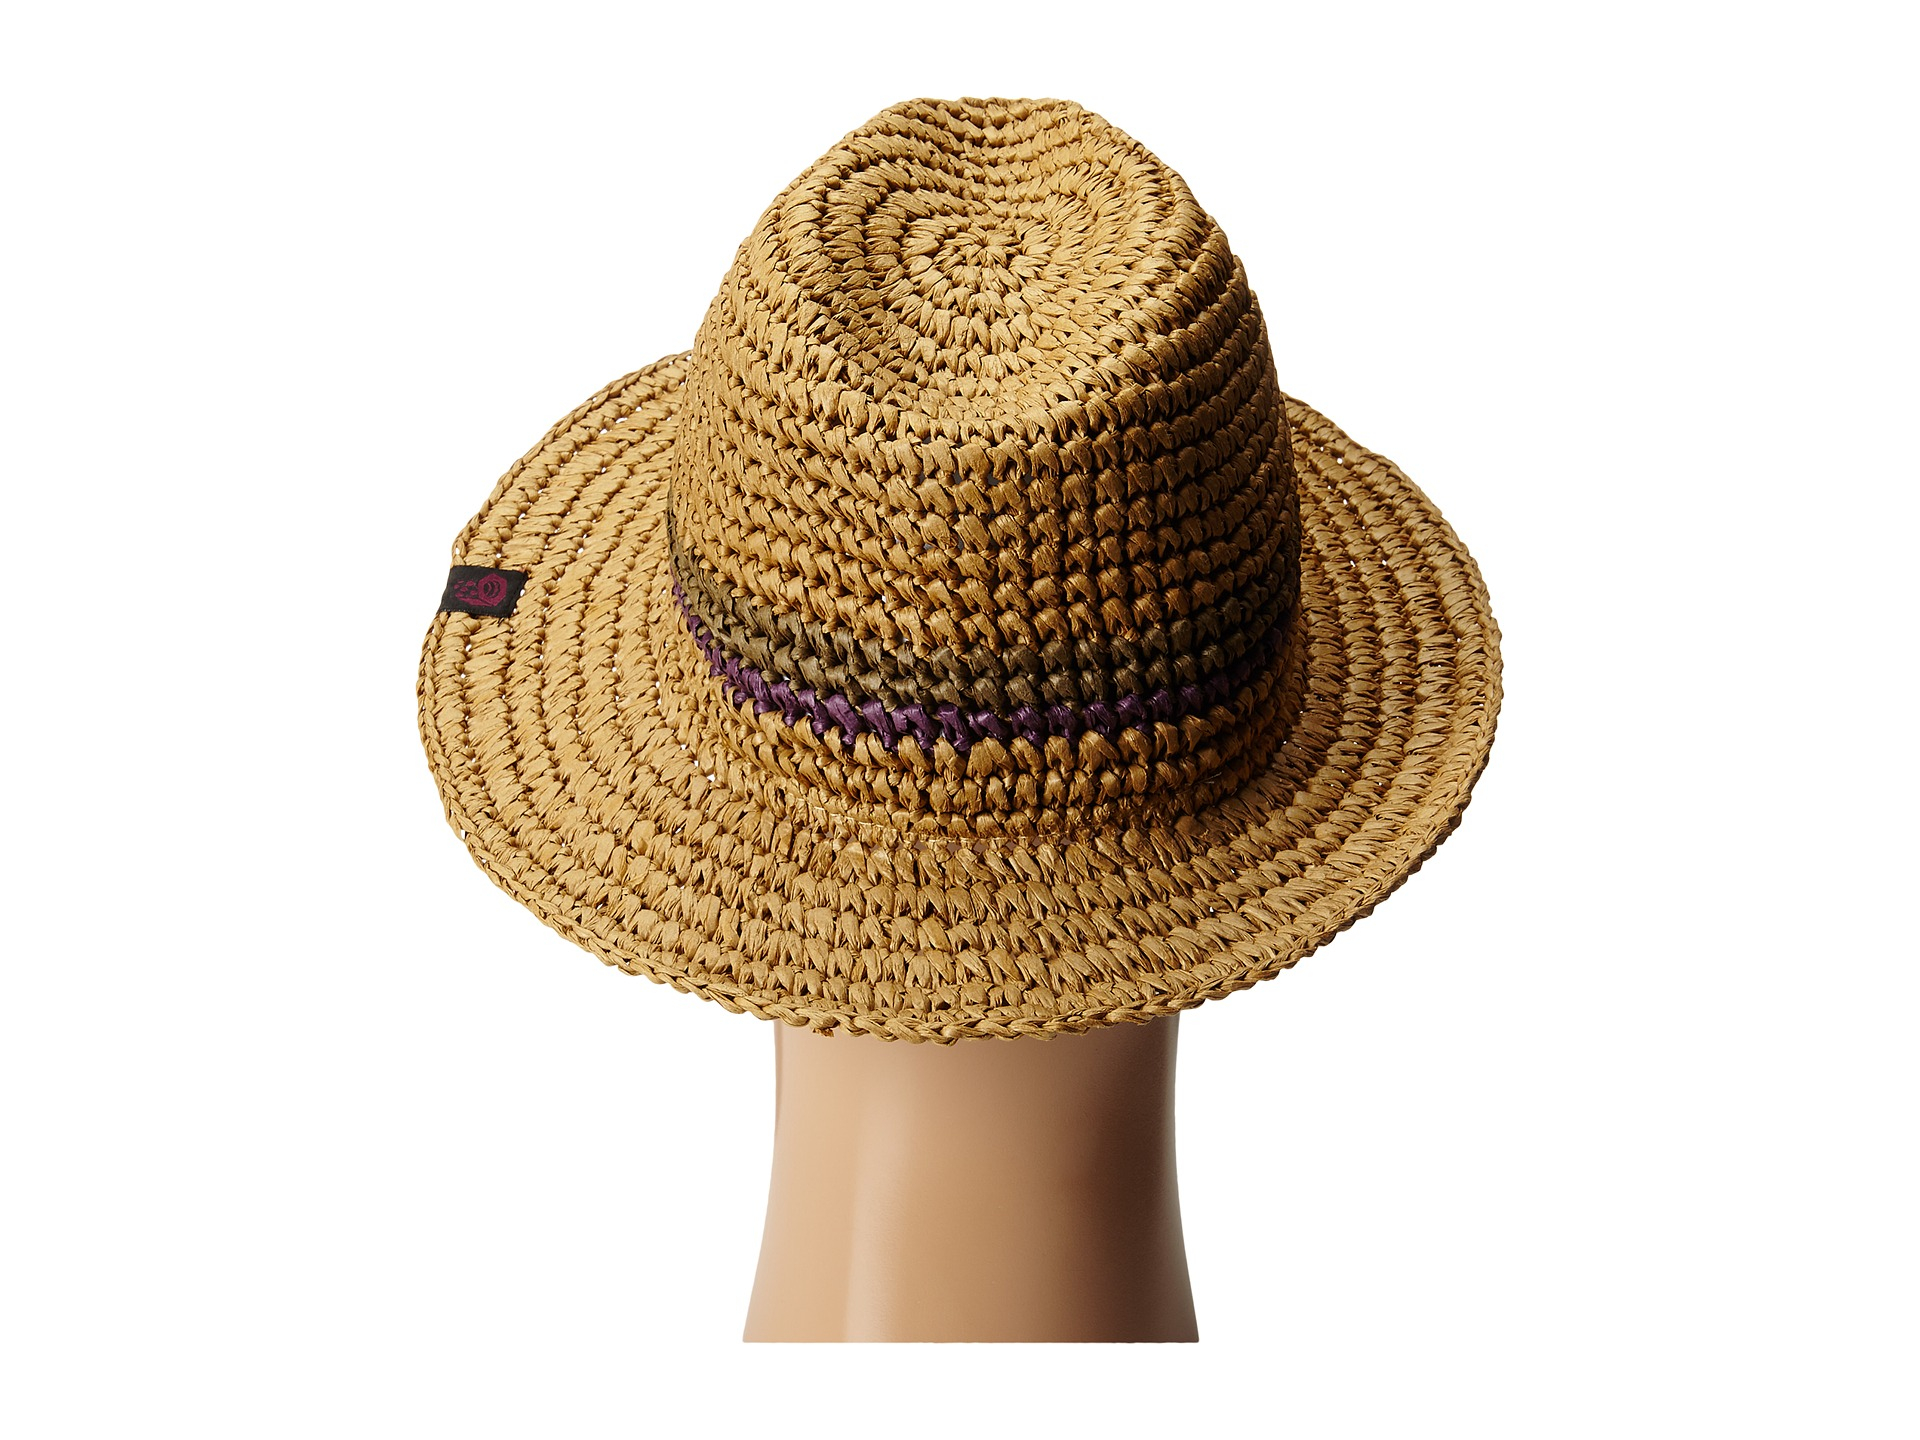 96894abbb79a1 Lyst - Mountain Hardwear Raffia Fedora in Brown for Men